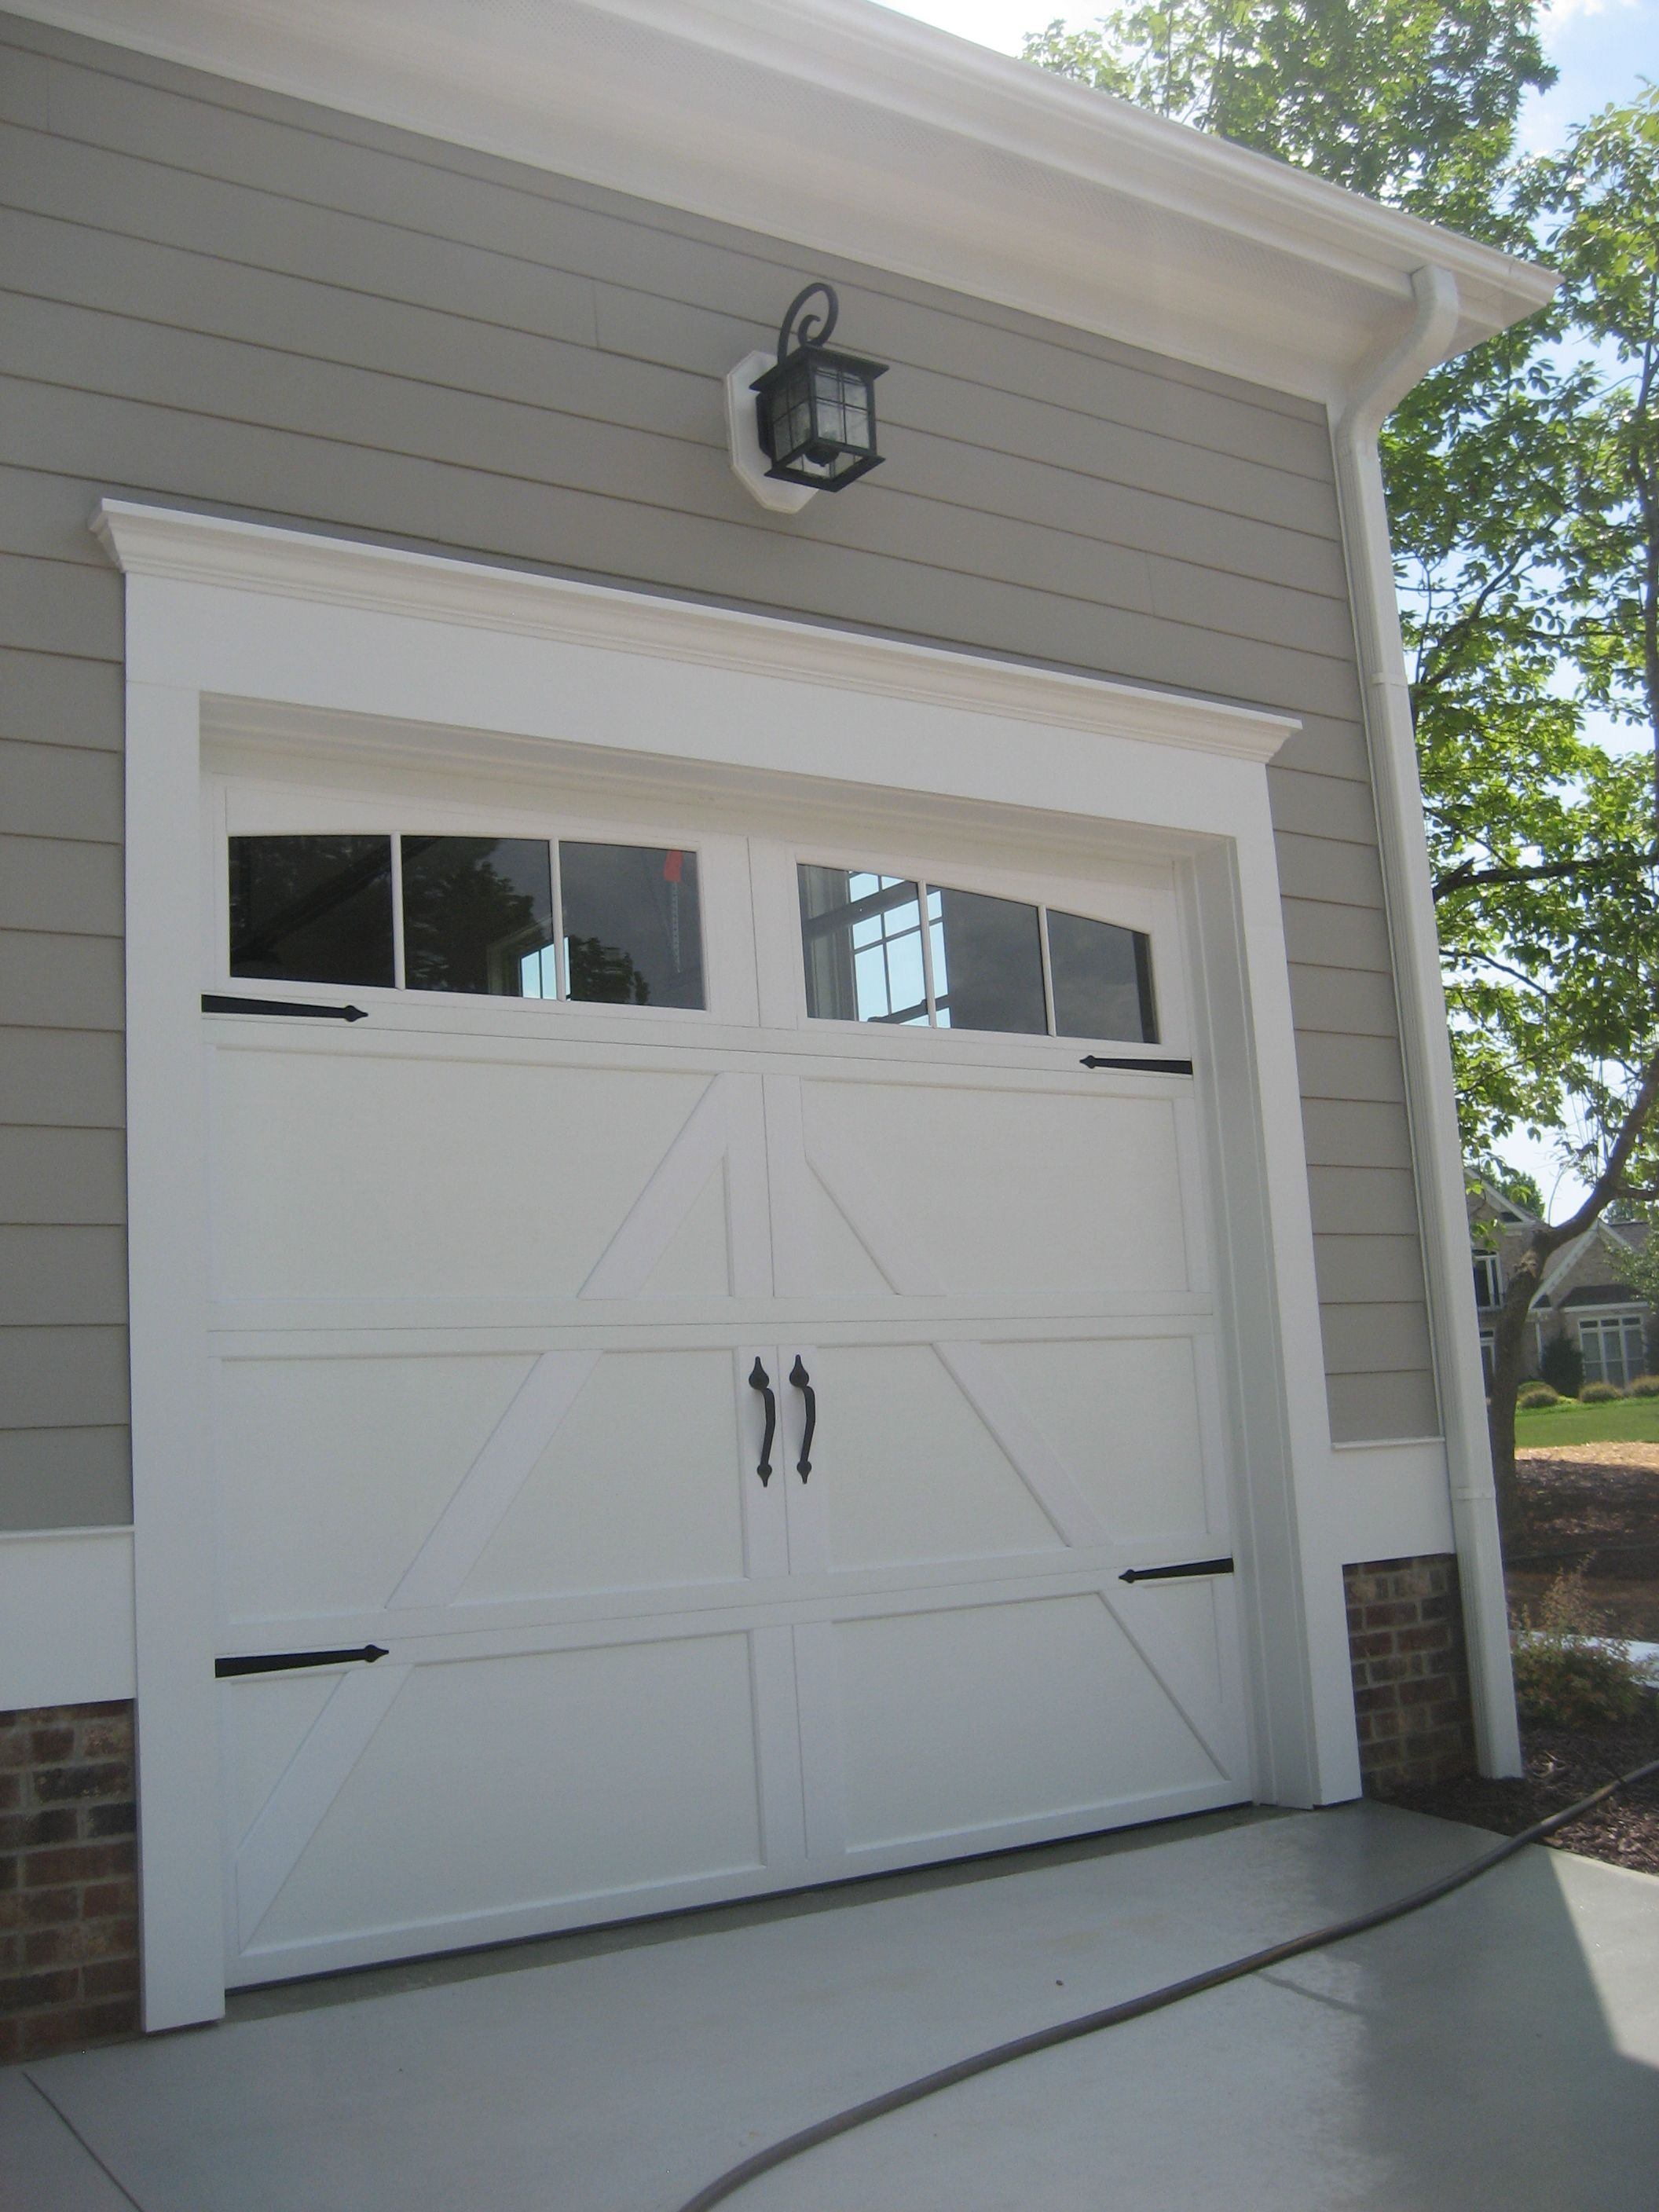 Add trim to garage door!!Add hardware to you boring garage door to Garage Door Trim Ideas on white bathroom vanity cabinet ideas, furniture trim ideas, swimming pool trim ideas, azek trim ideas, windows trim ideas, garage chair rail ideas, home trim ideas, garage addon ideas, garage trim molding, garage makeovers on a budget, roof trim ideas, fireplace trim ideas, microwave trim ideas, door design ideas, door molding ideas, patio trim ideas, garage makeover ideas, siding trim ideas, landscaping trim ideas, brick trim ideas,